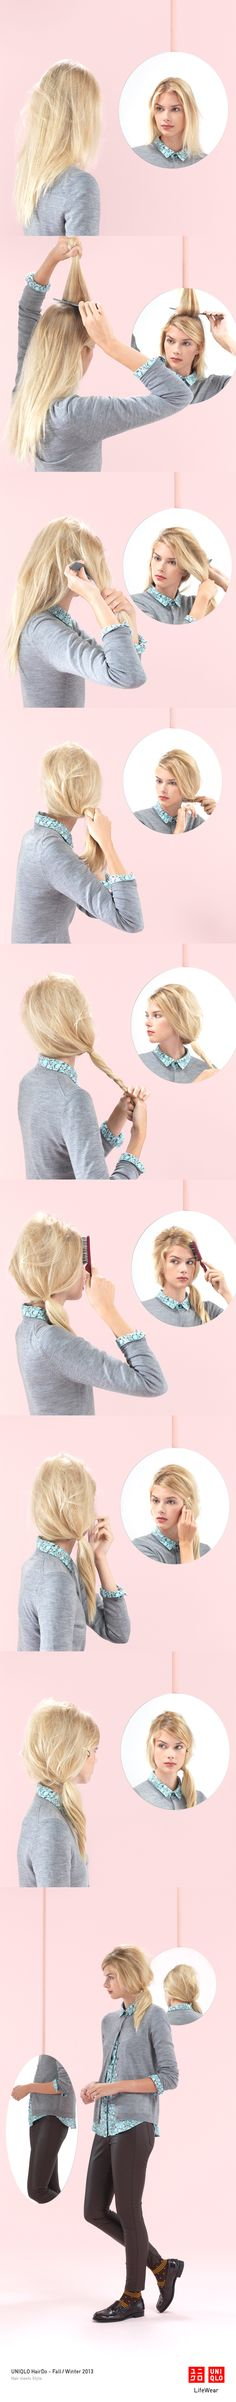 """THE BEE HIVE WITH TWIST"" : A cardigan, patterned blouse, and loose ponytail make this a great look for a day at the office. Click the image for DIY instructions! #Ponytail #Hair #DIY #Hairstyle #UNIQLO"